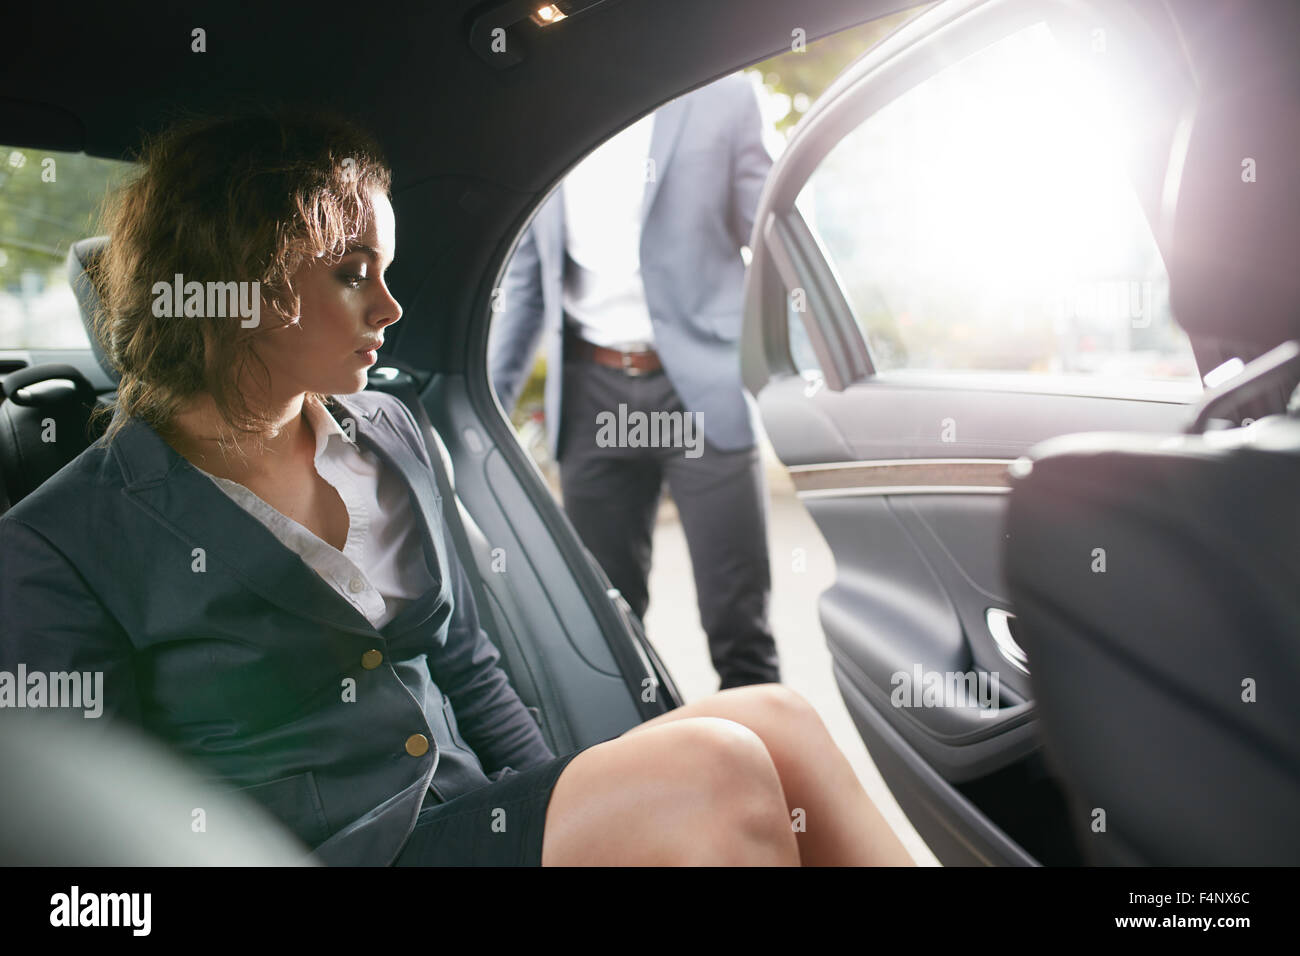 Man opening a passenger door for a businesswoman getting out of a car. Female entrepreneur traveling to office in - Stock Image